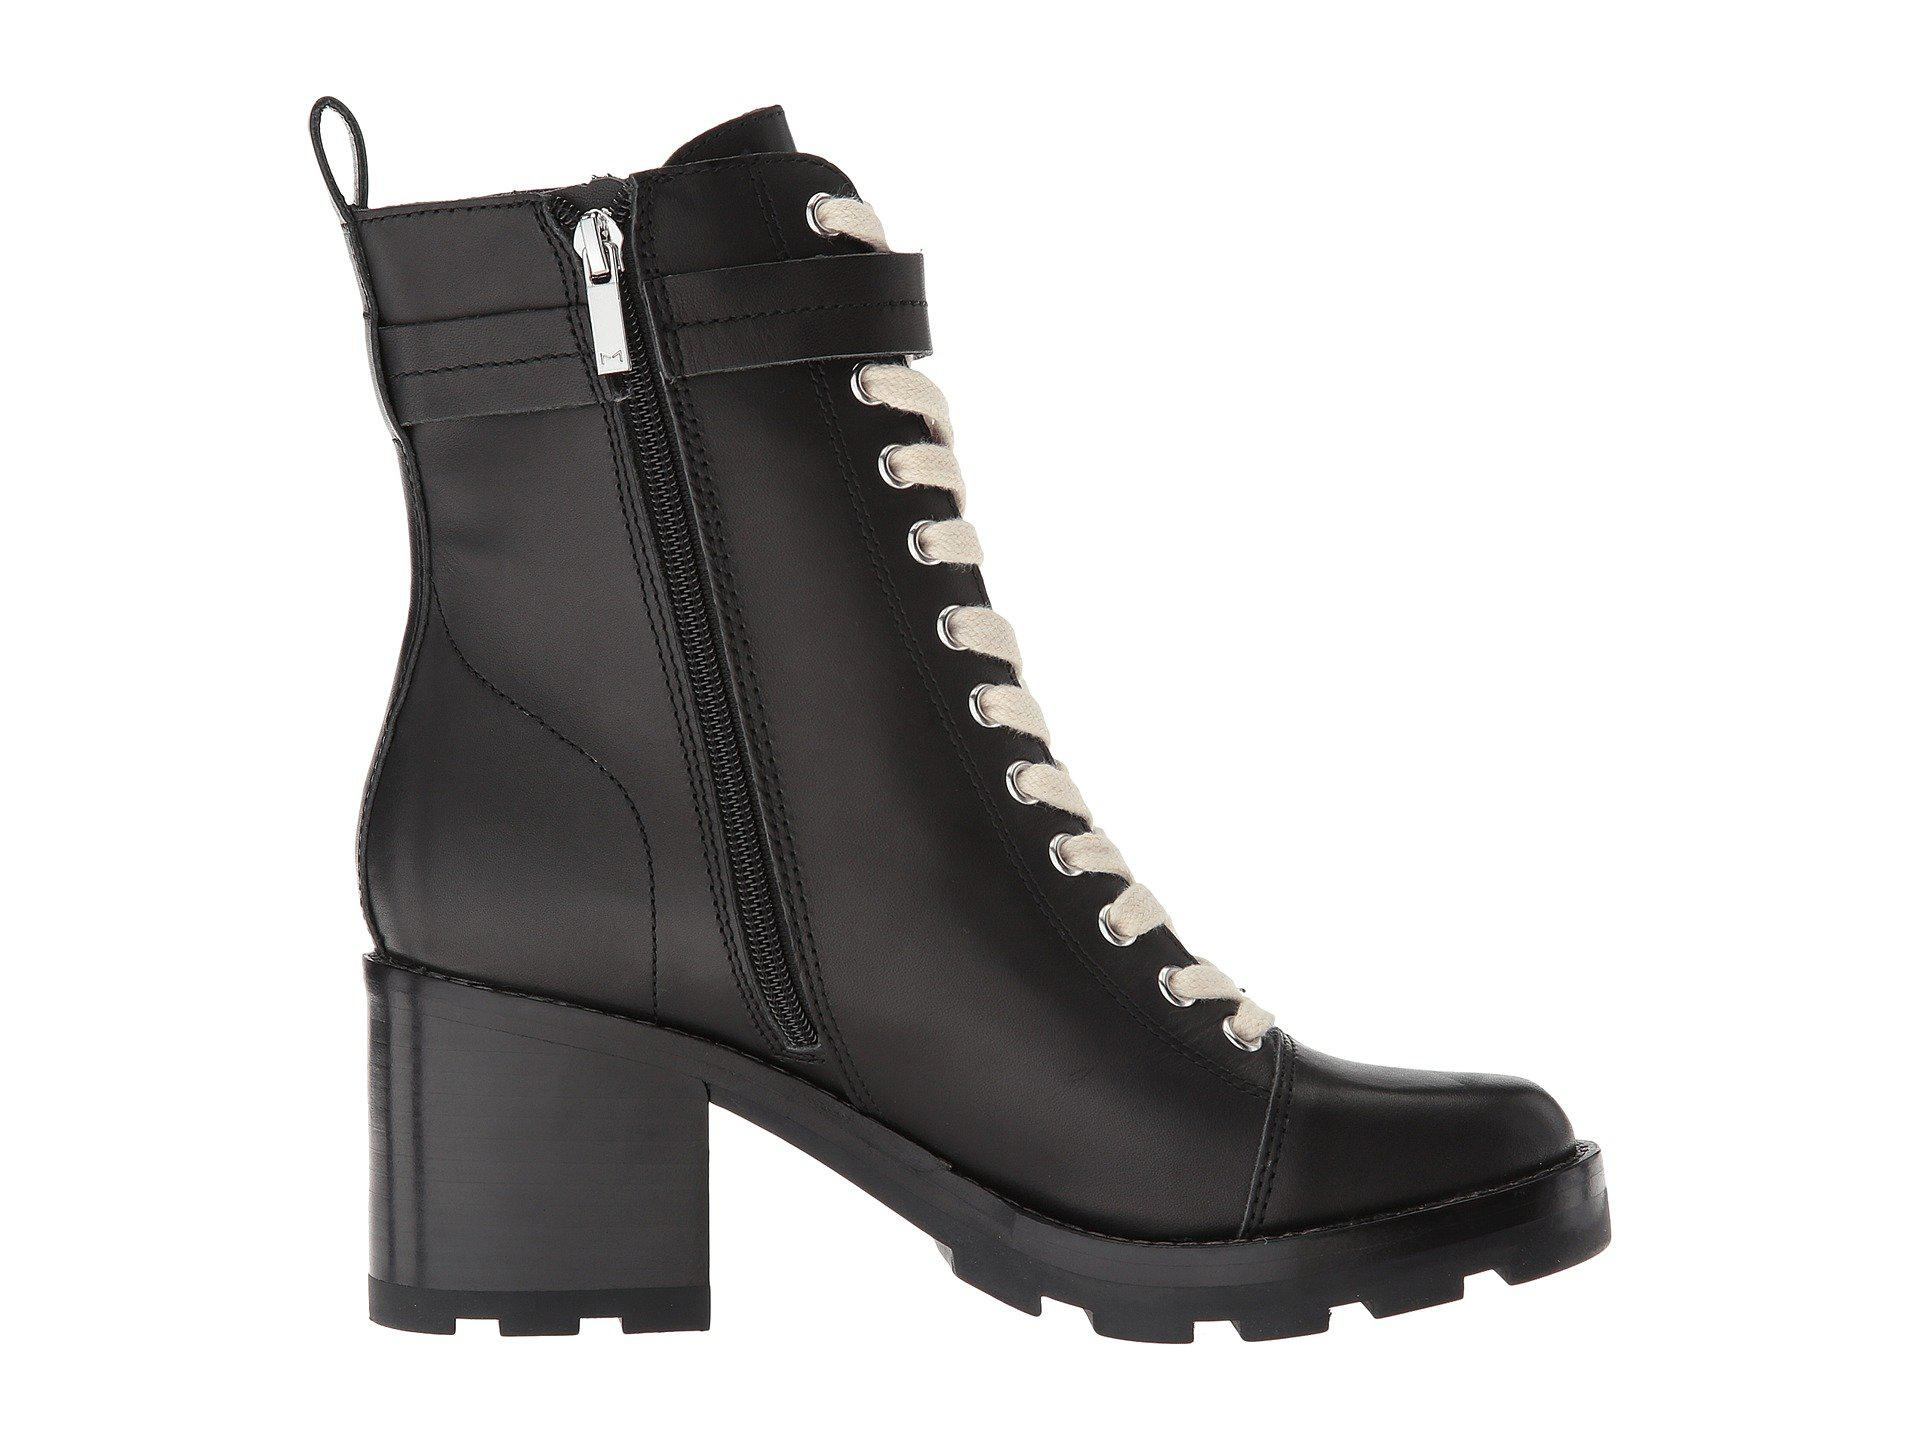 Waren Round Toe Lace Up Leather Boots